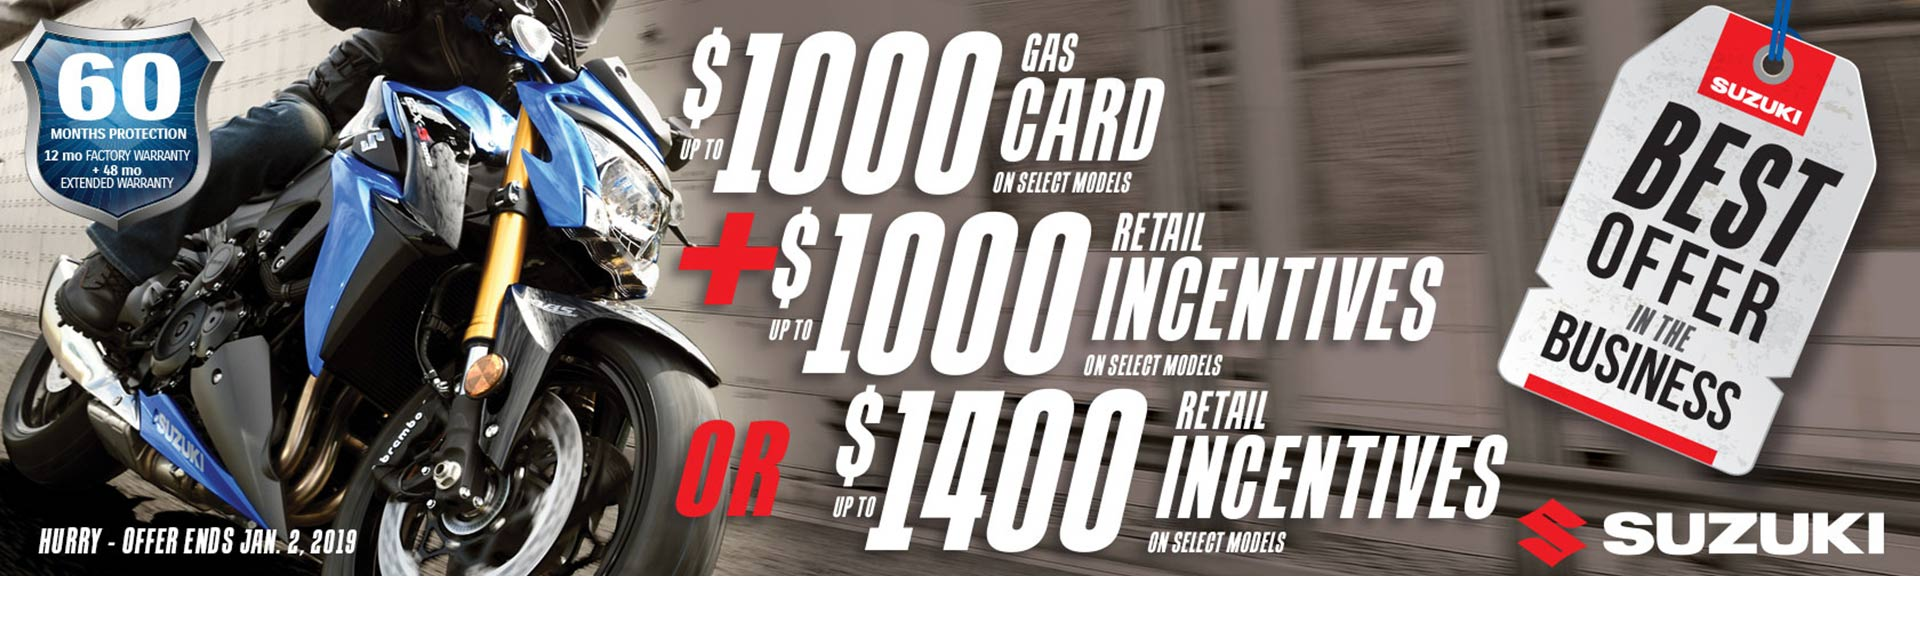 Suzuki: Suzuki Fuel the Ride Fall Savings - Motorcycle